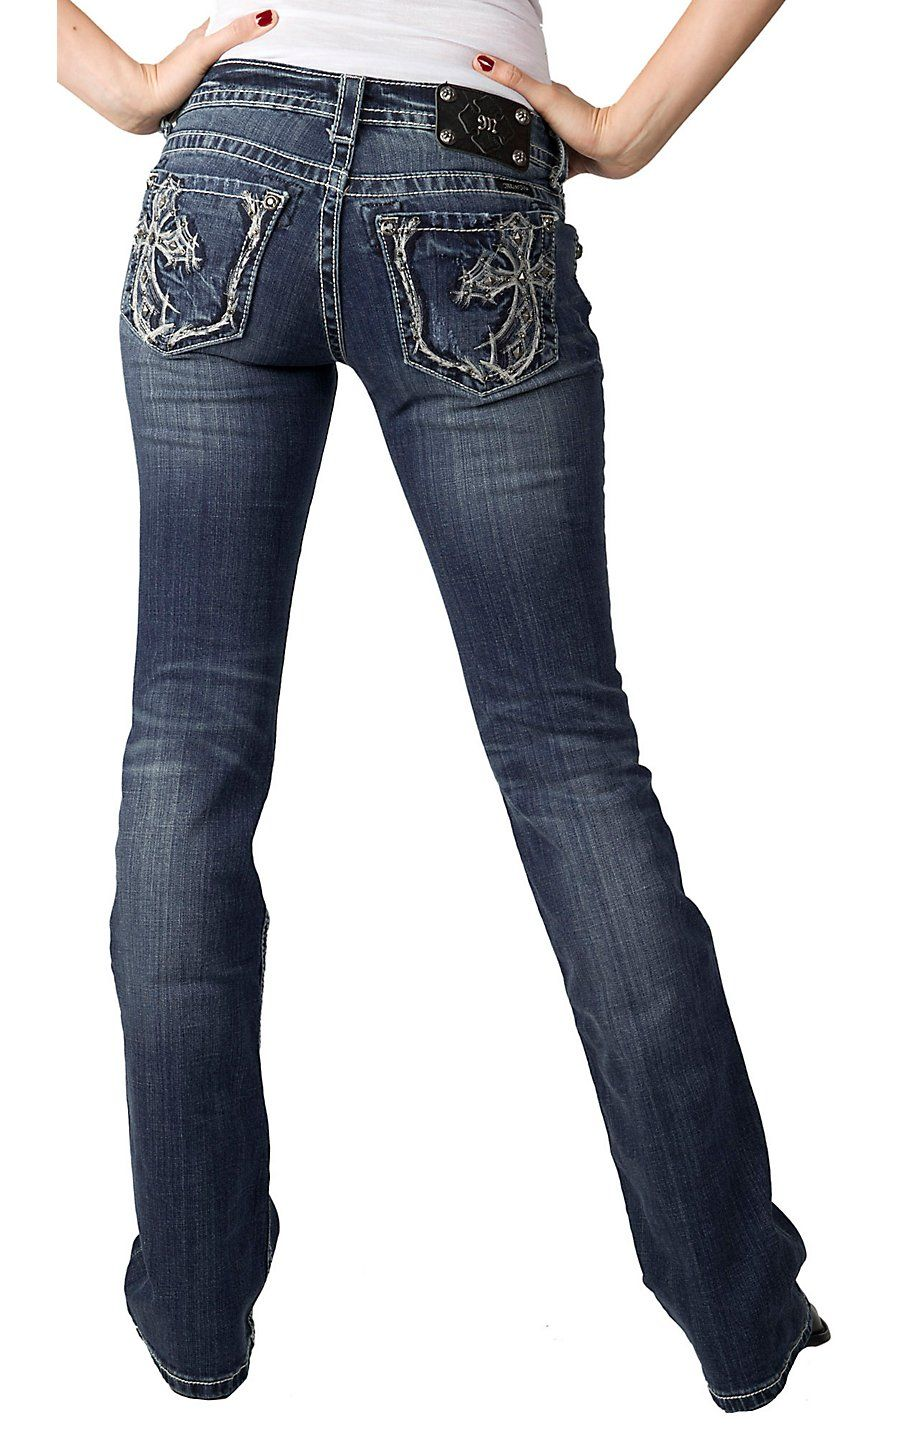 Miss Me® Ladies Fancy Cross Embroidery with Studs and Crystals Boot Cut Jean - Extended Sizes | Cavender's Boot City